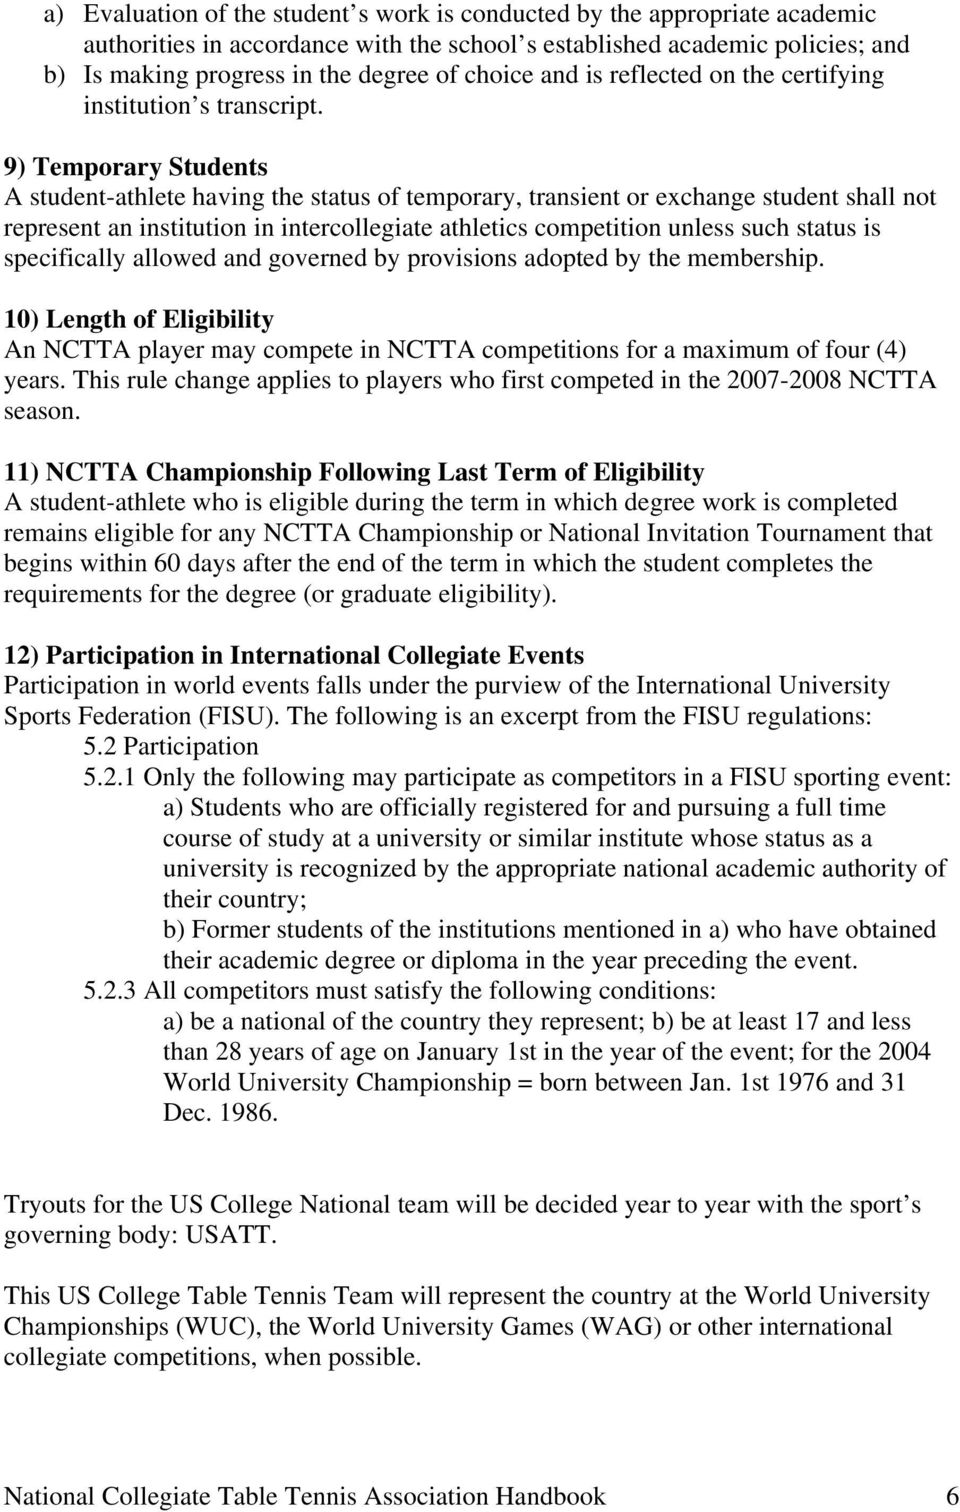 9) Temporary Students A student-athlete having the status of temporary, transient or exchange student shall not represent an institution in intercollegiate athletics competition unless such status is